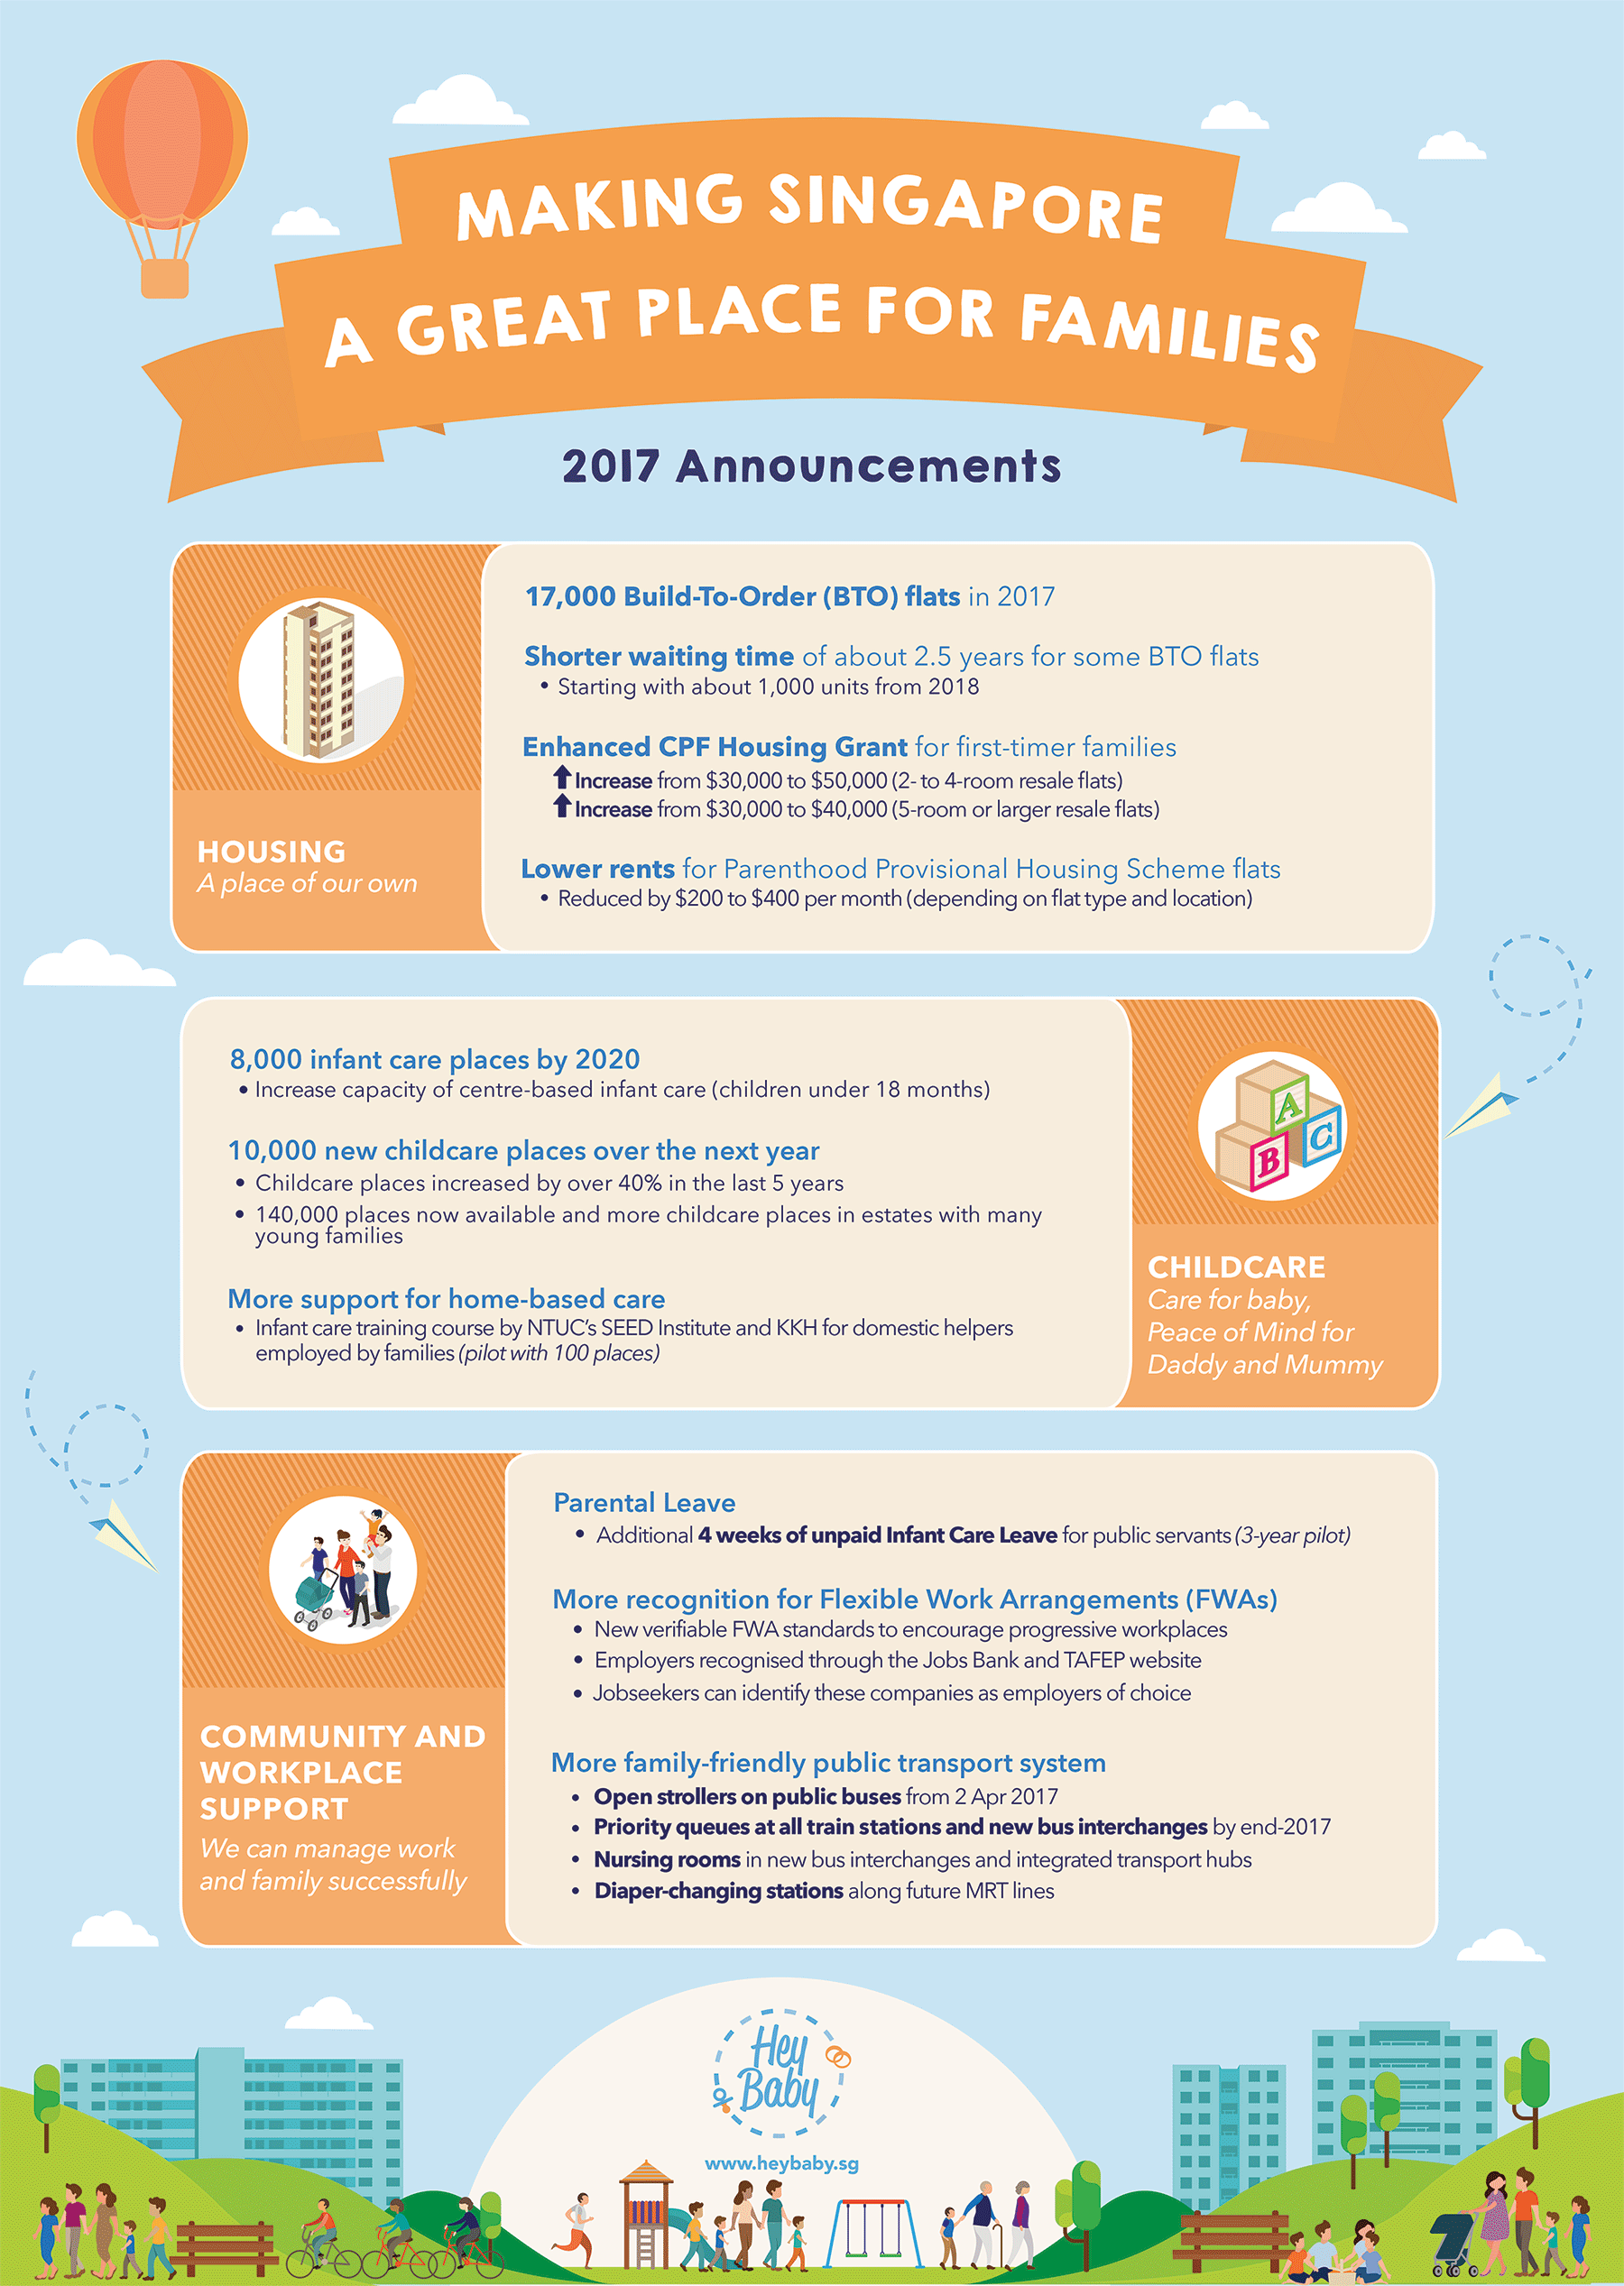 Making Singapore A Great Place For Families - Infographic Facts